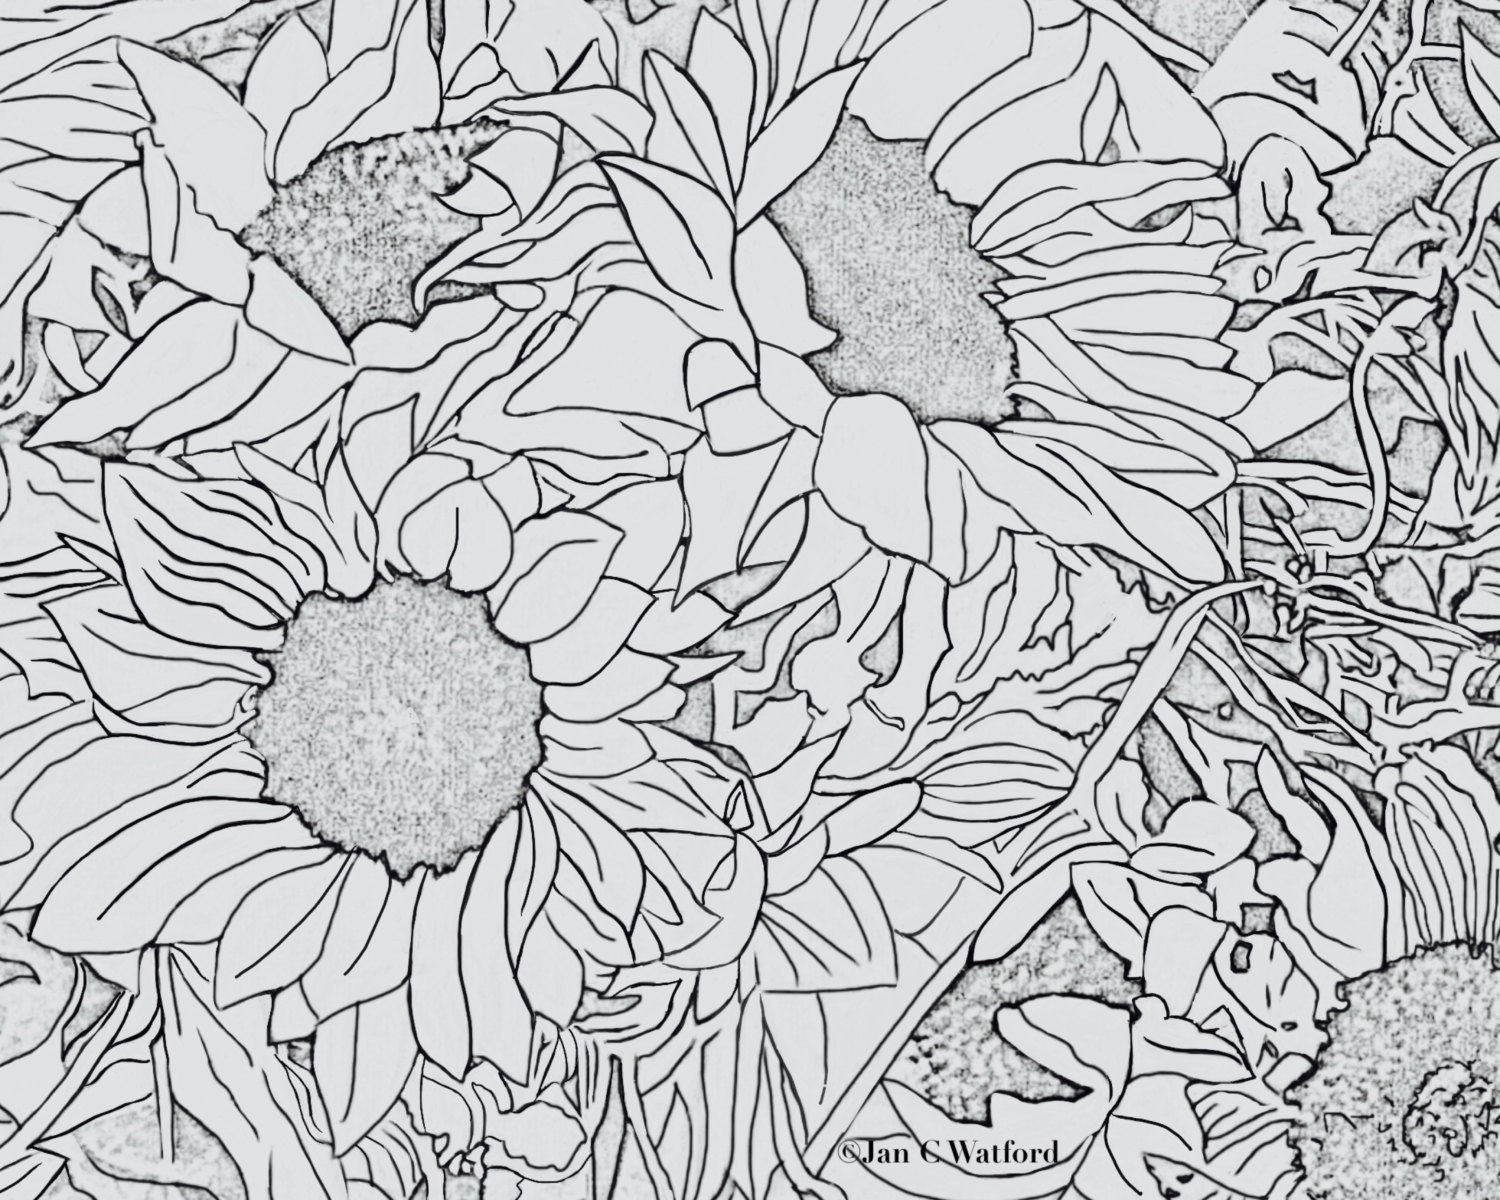 Sunflower Coloring Pages For Adults  Sunflowers 1 Adult Coloring Pages Coloring Page Printable